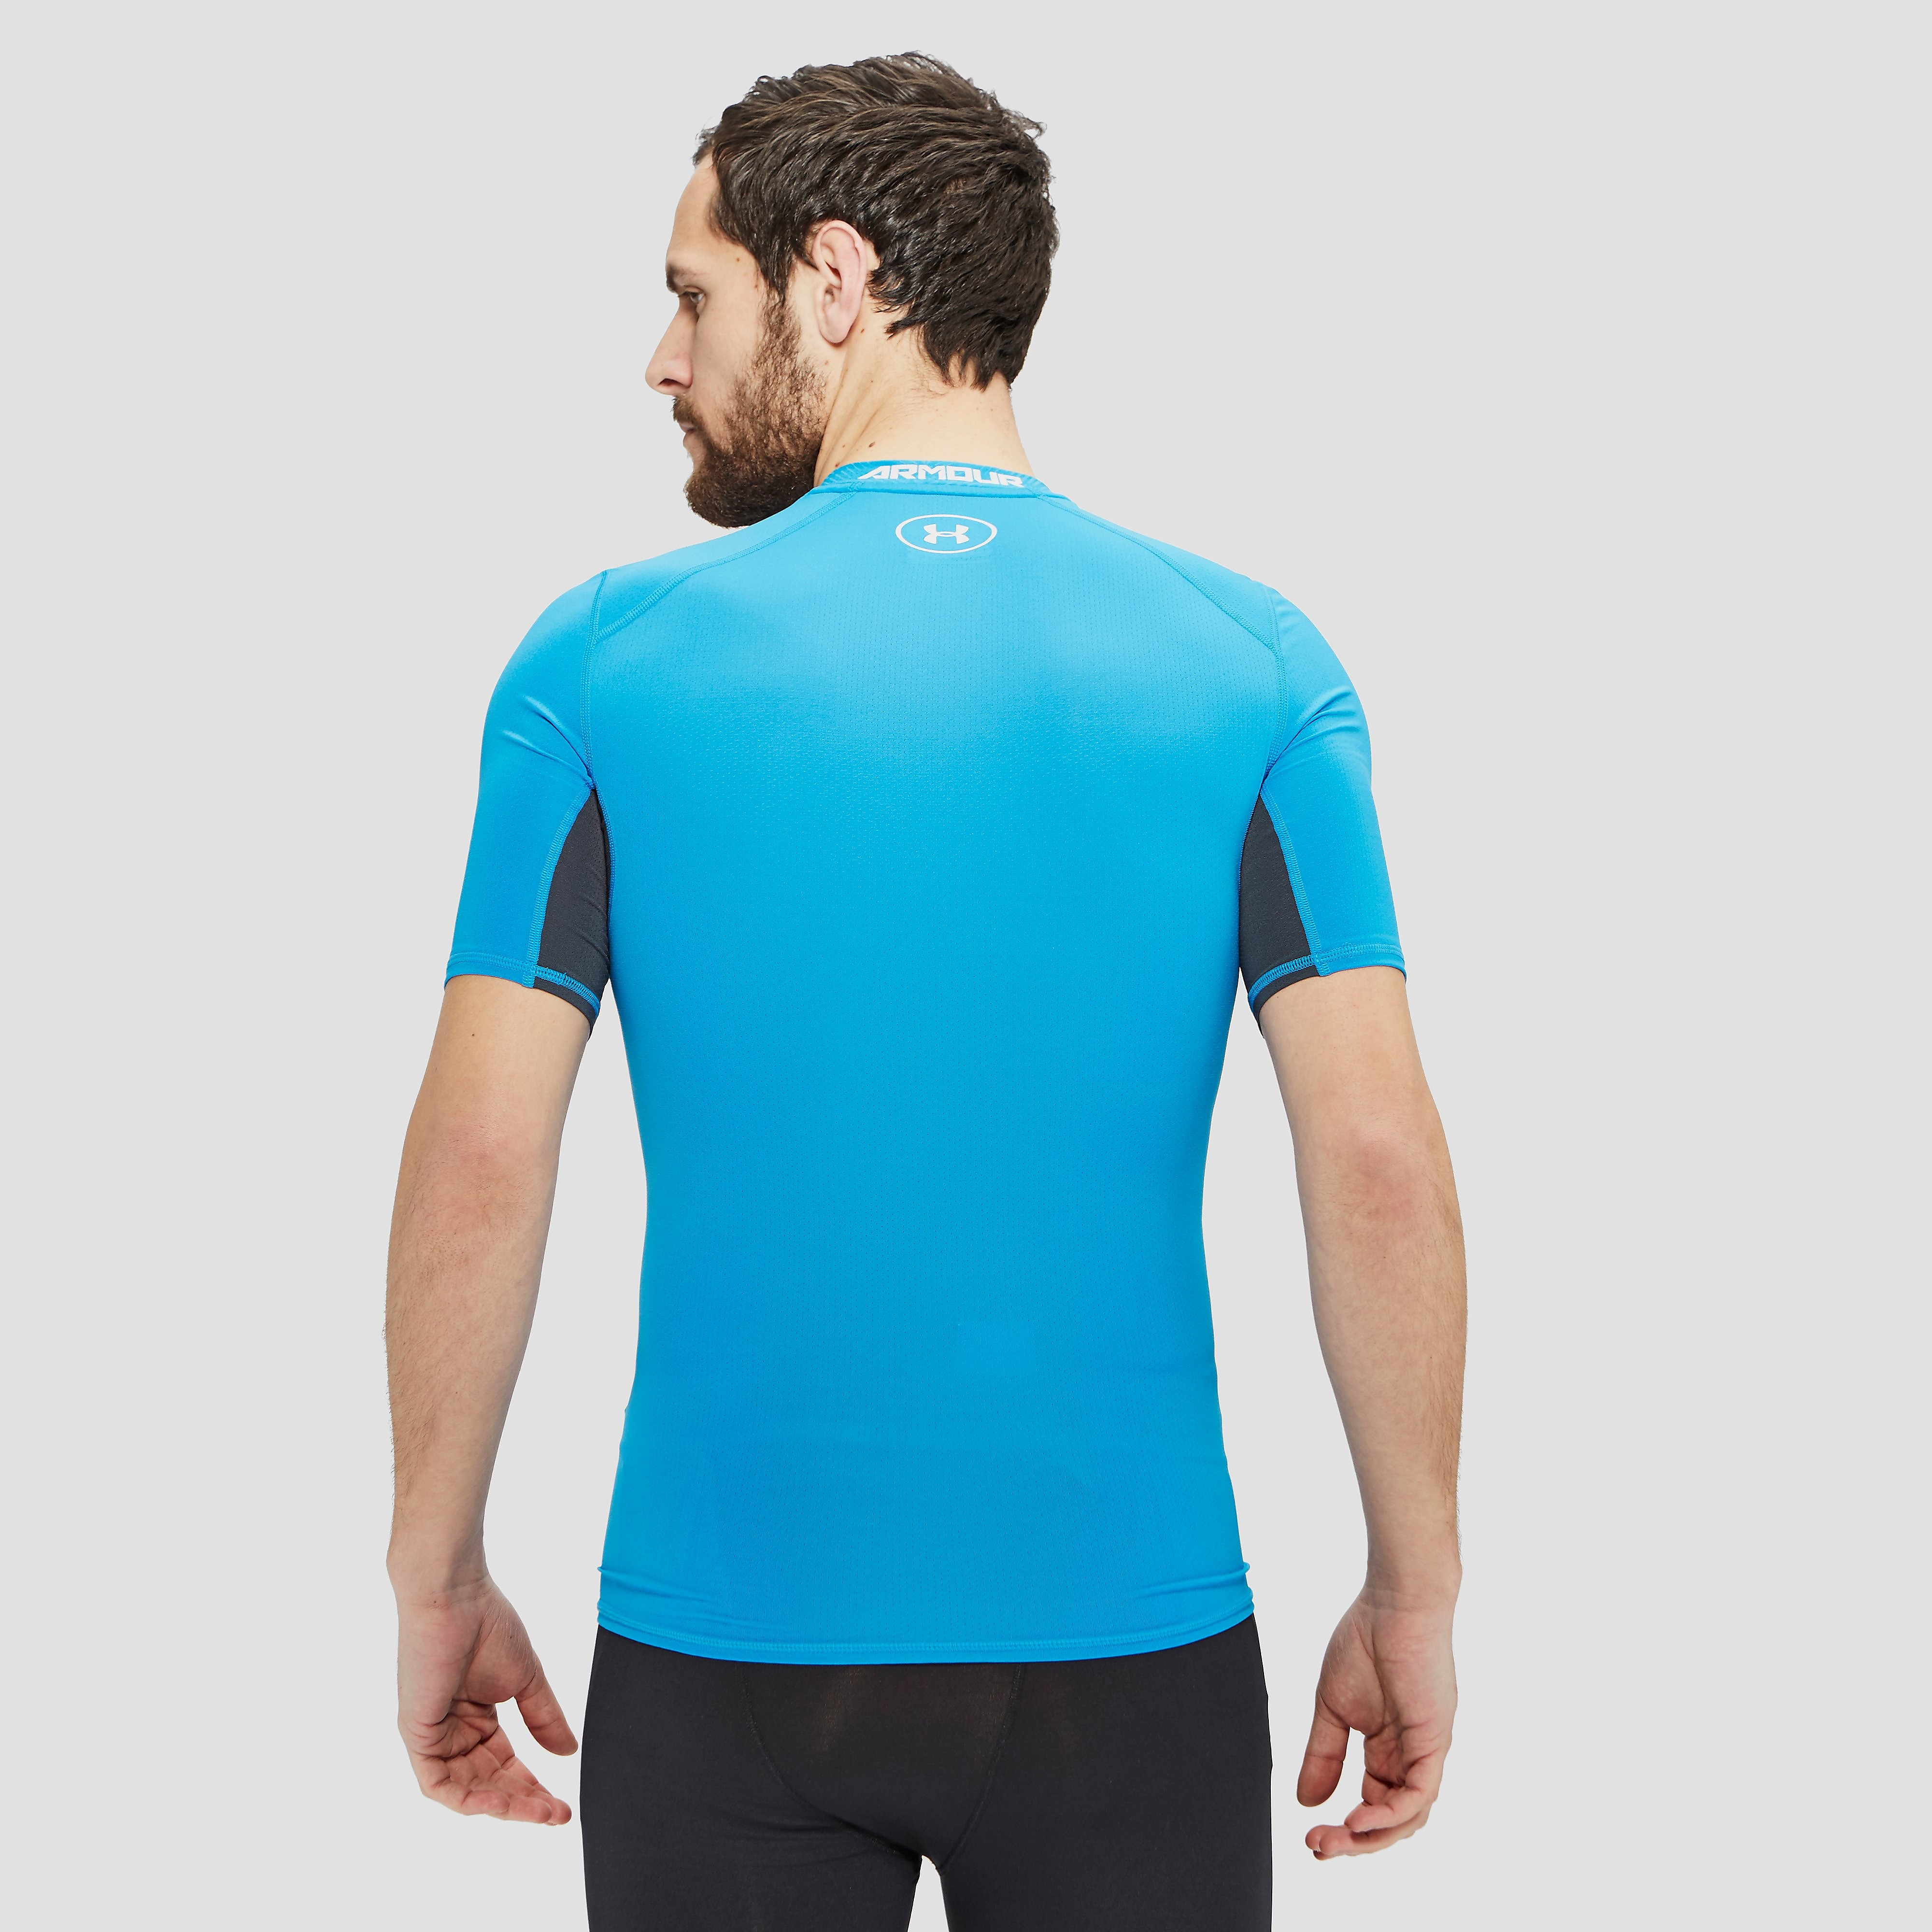 Under Armour Men's UA CoolSwitch Compression Top